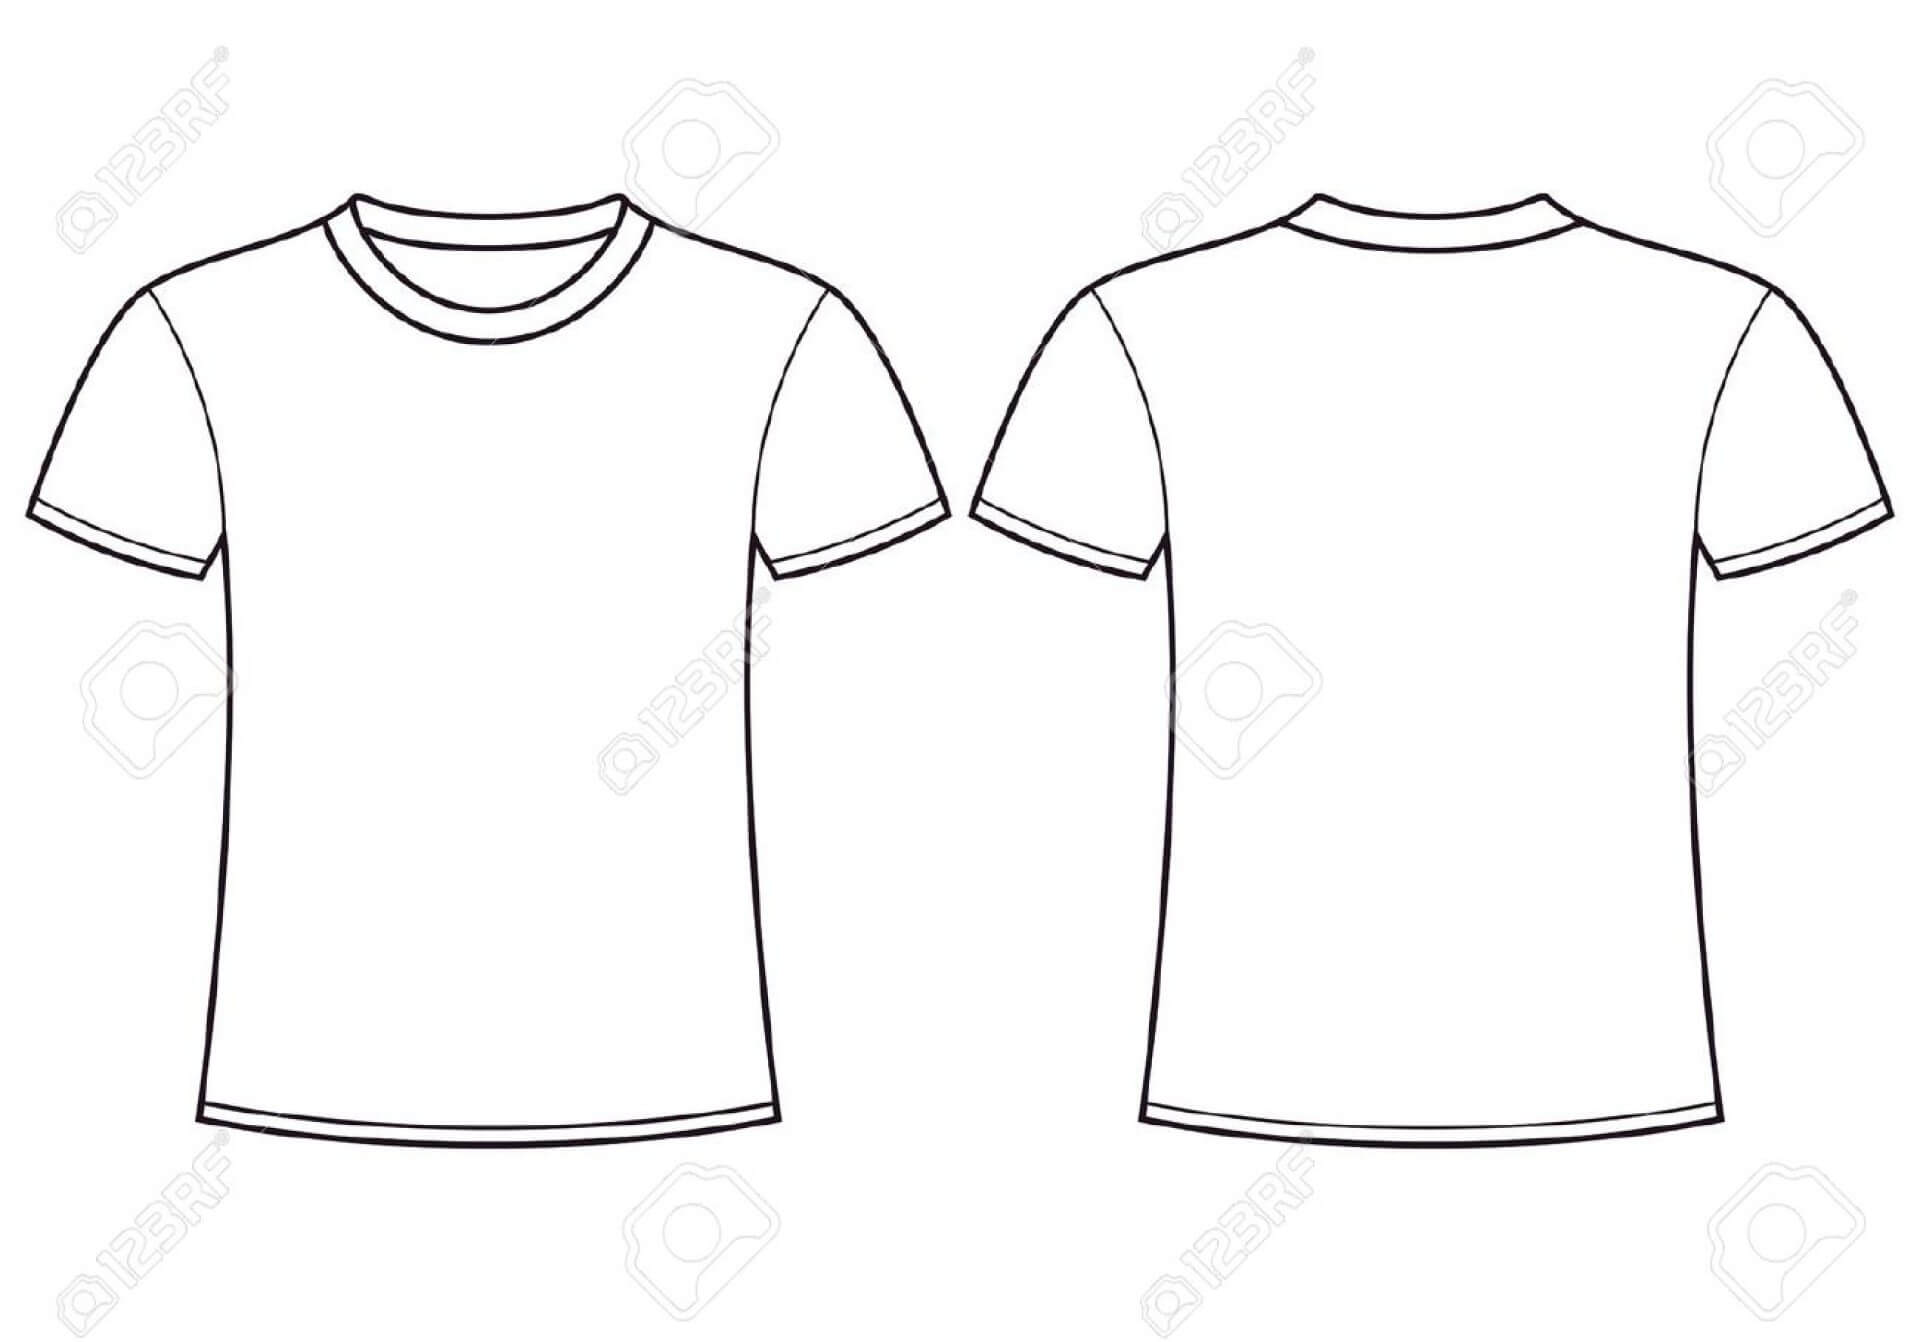 001 Plain T Shirt Template Ideas Blank Shirts Vector Throughout Printable Blank Tshirt Template